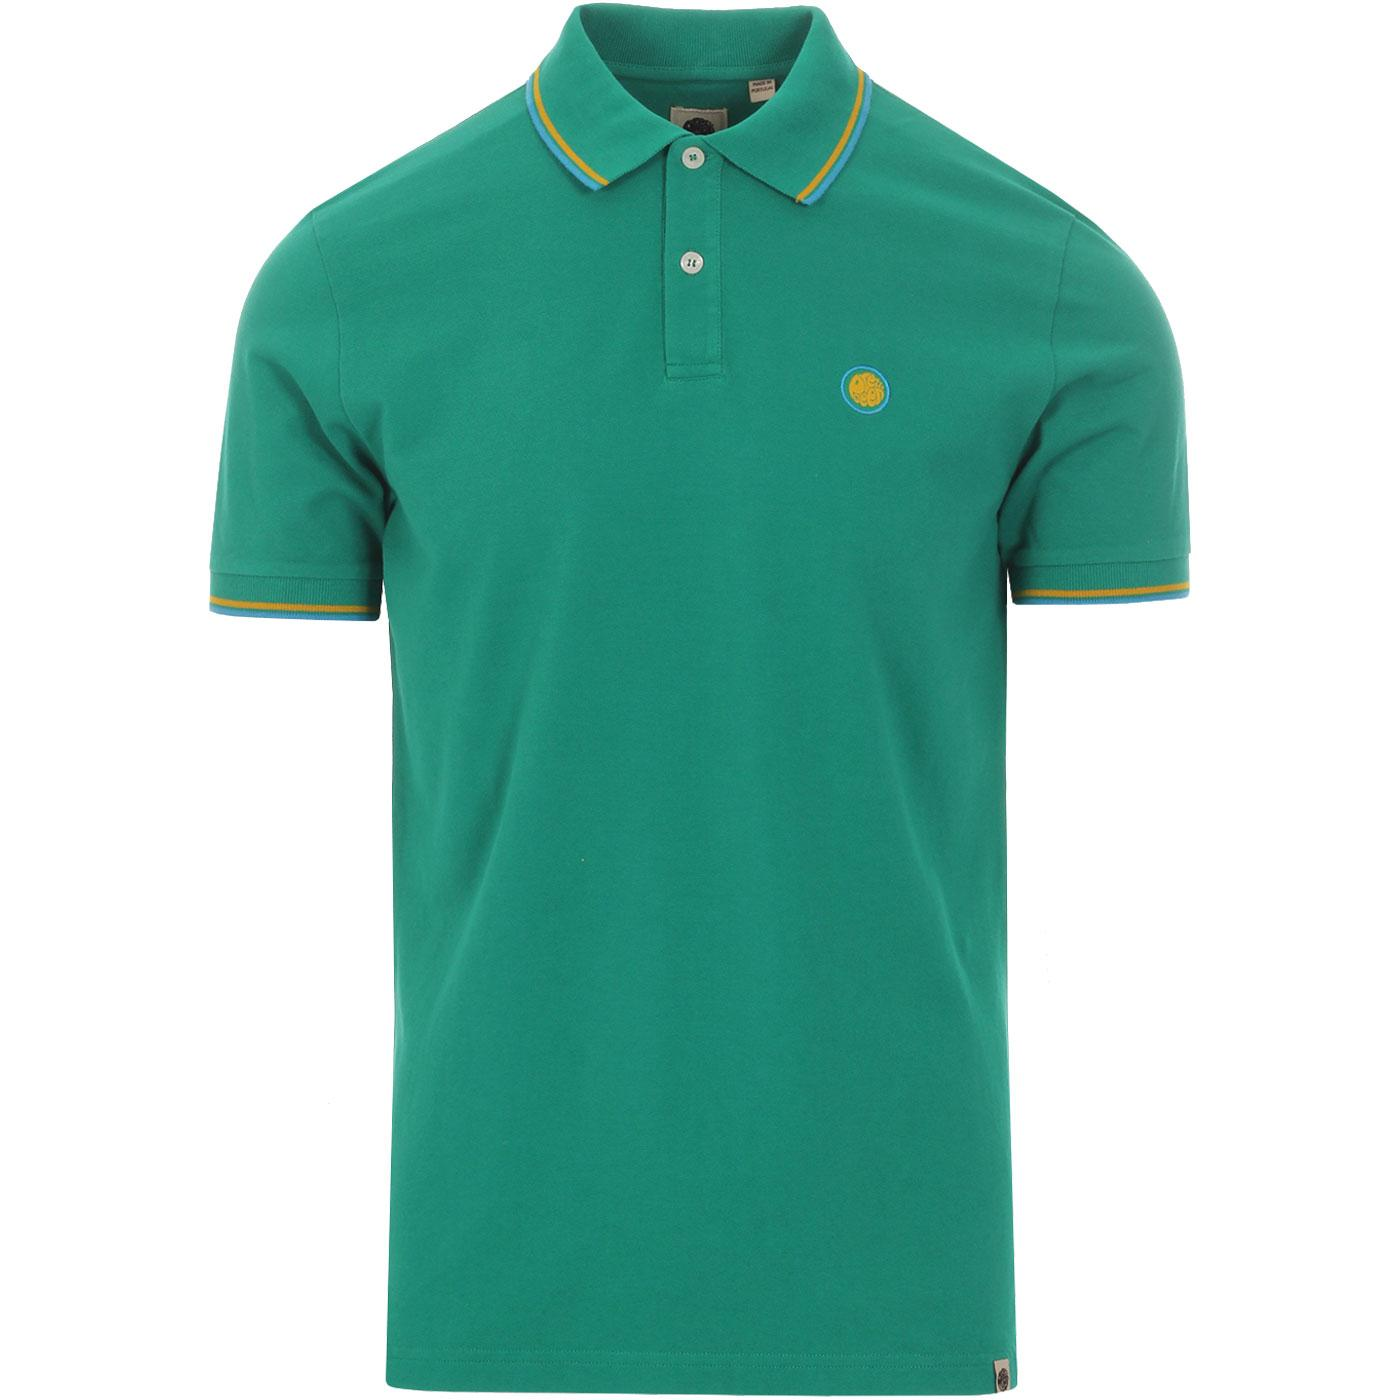 PRETTY GREEN Men's Mod Tipped Pique Polo Shirt